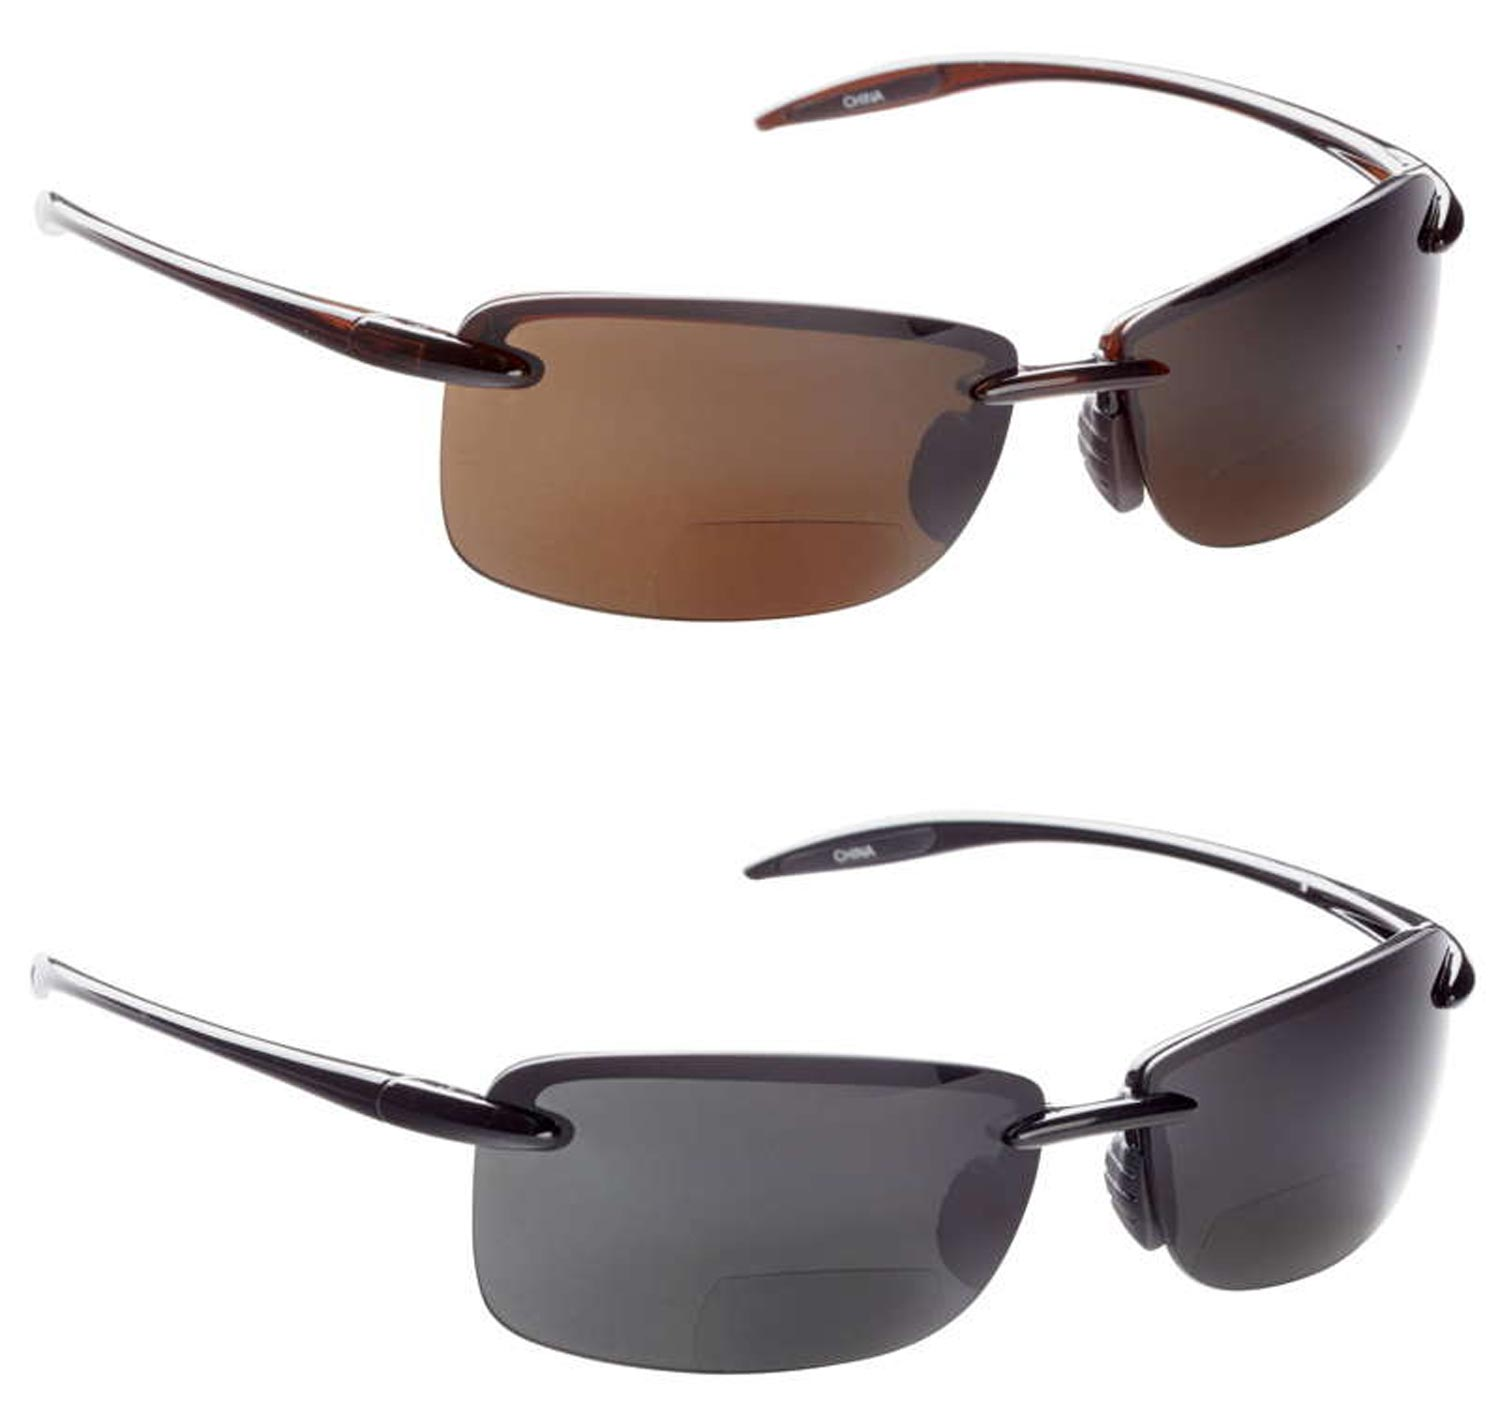 9ed068d8c29 Polarized Fishing Glasses With Magnifier « One More Soul